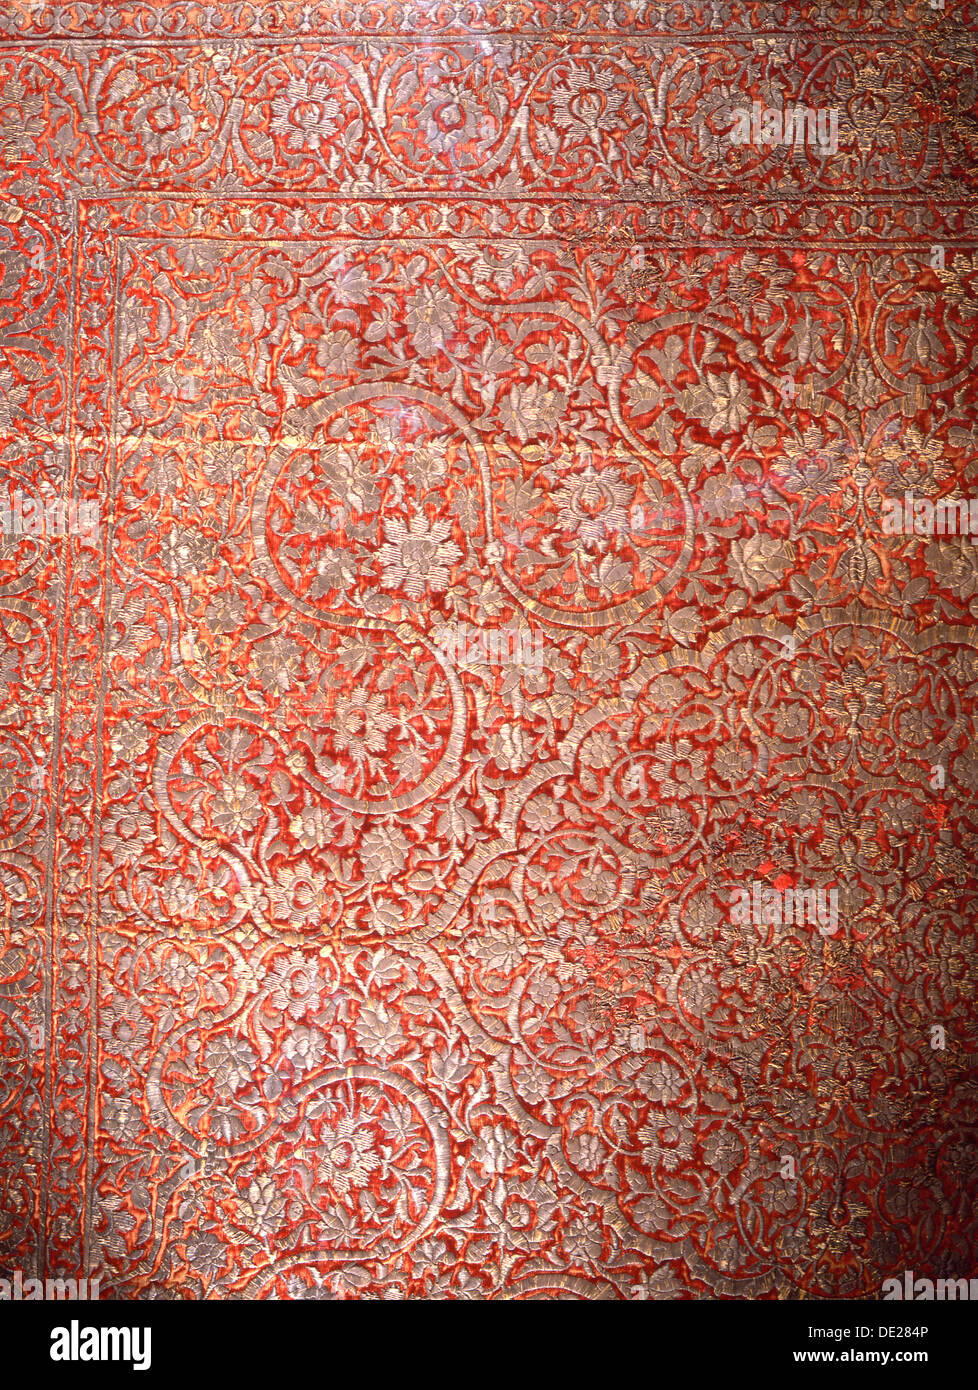 Red silk carpet with heavy silver arabesque designs. - Stock Image